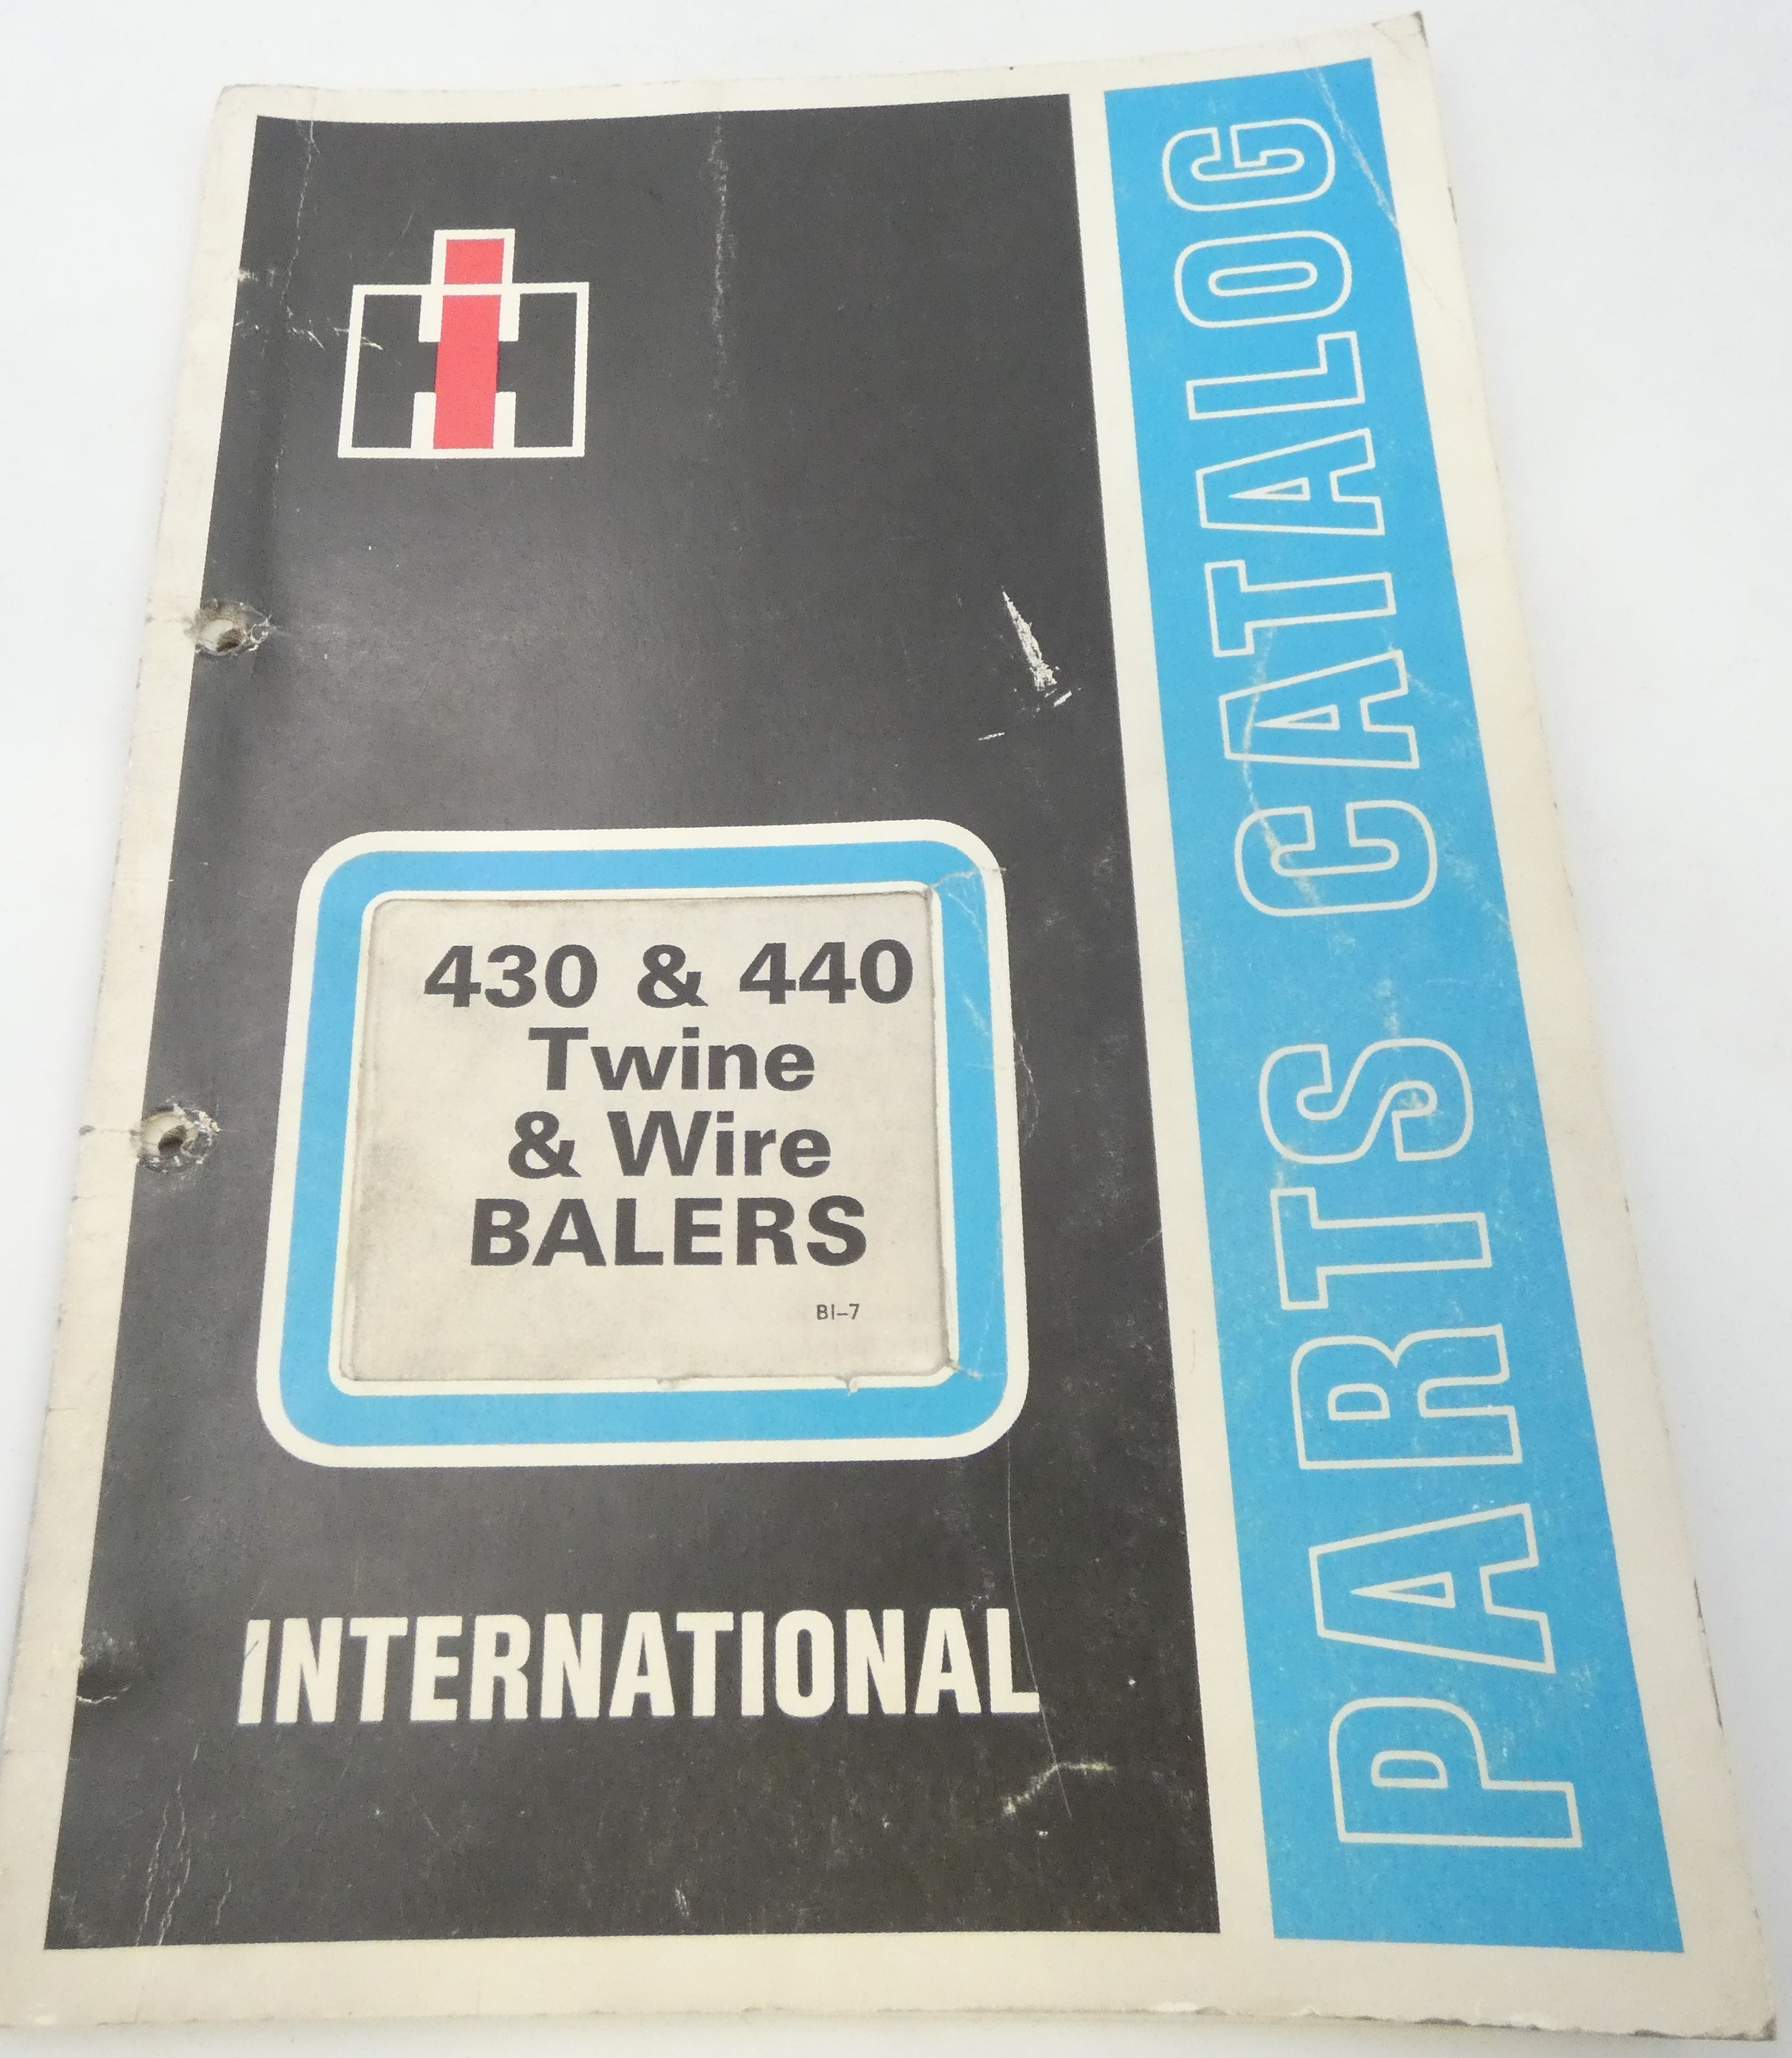 International 430 & 440 twine & wire balers parts catalog